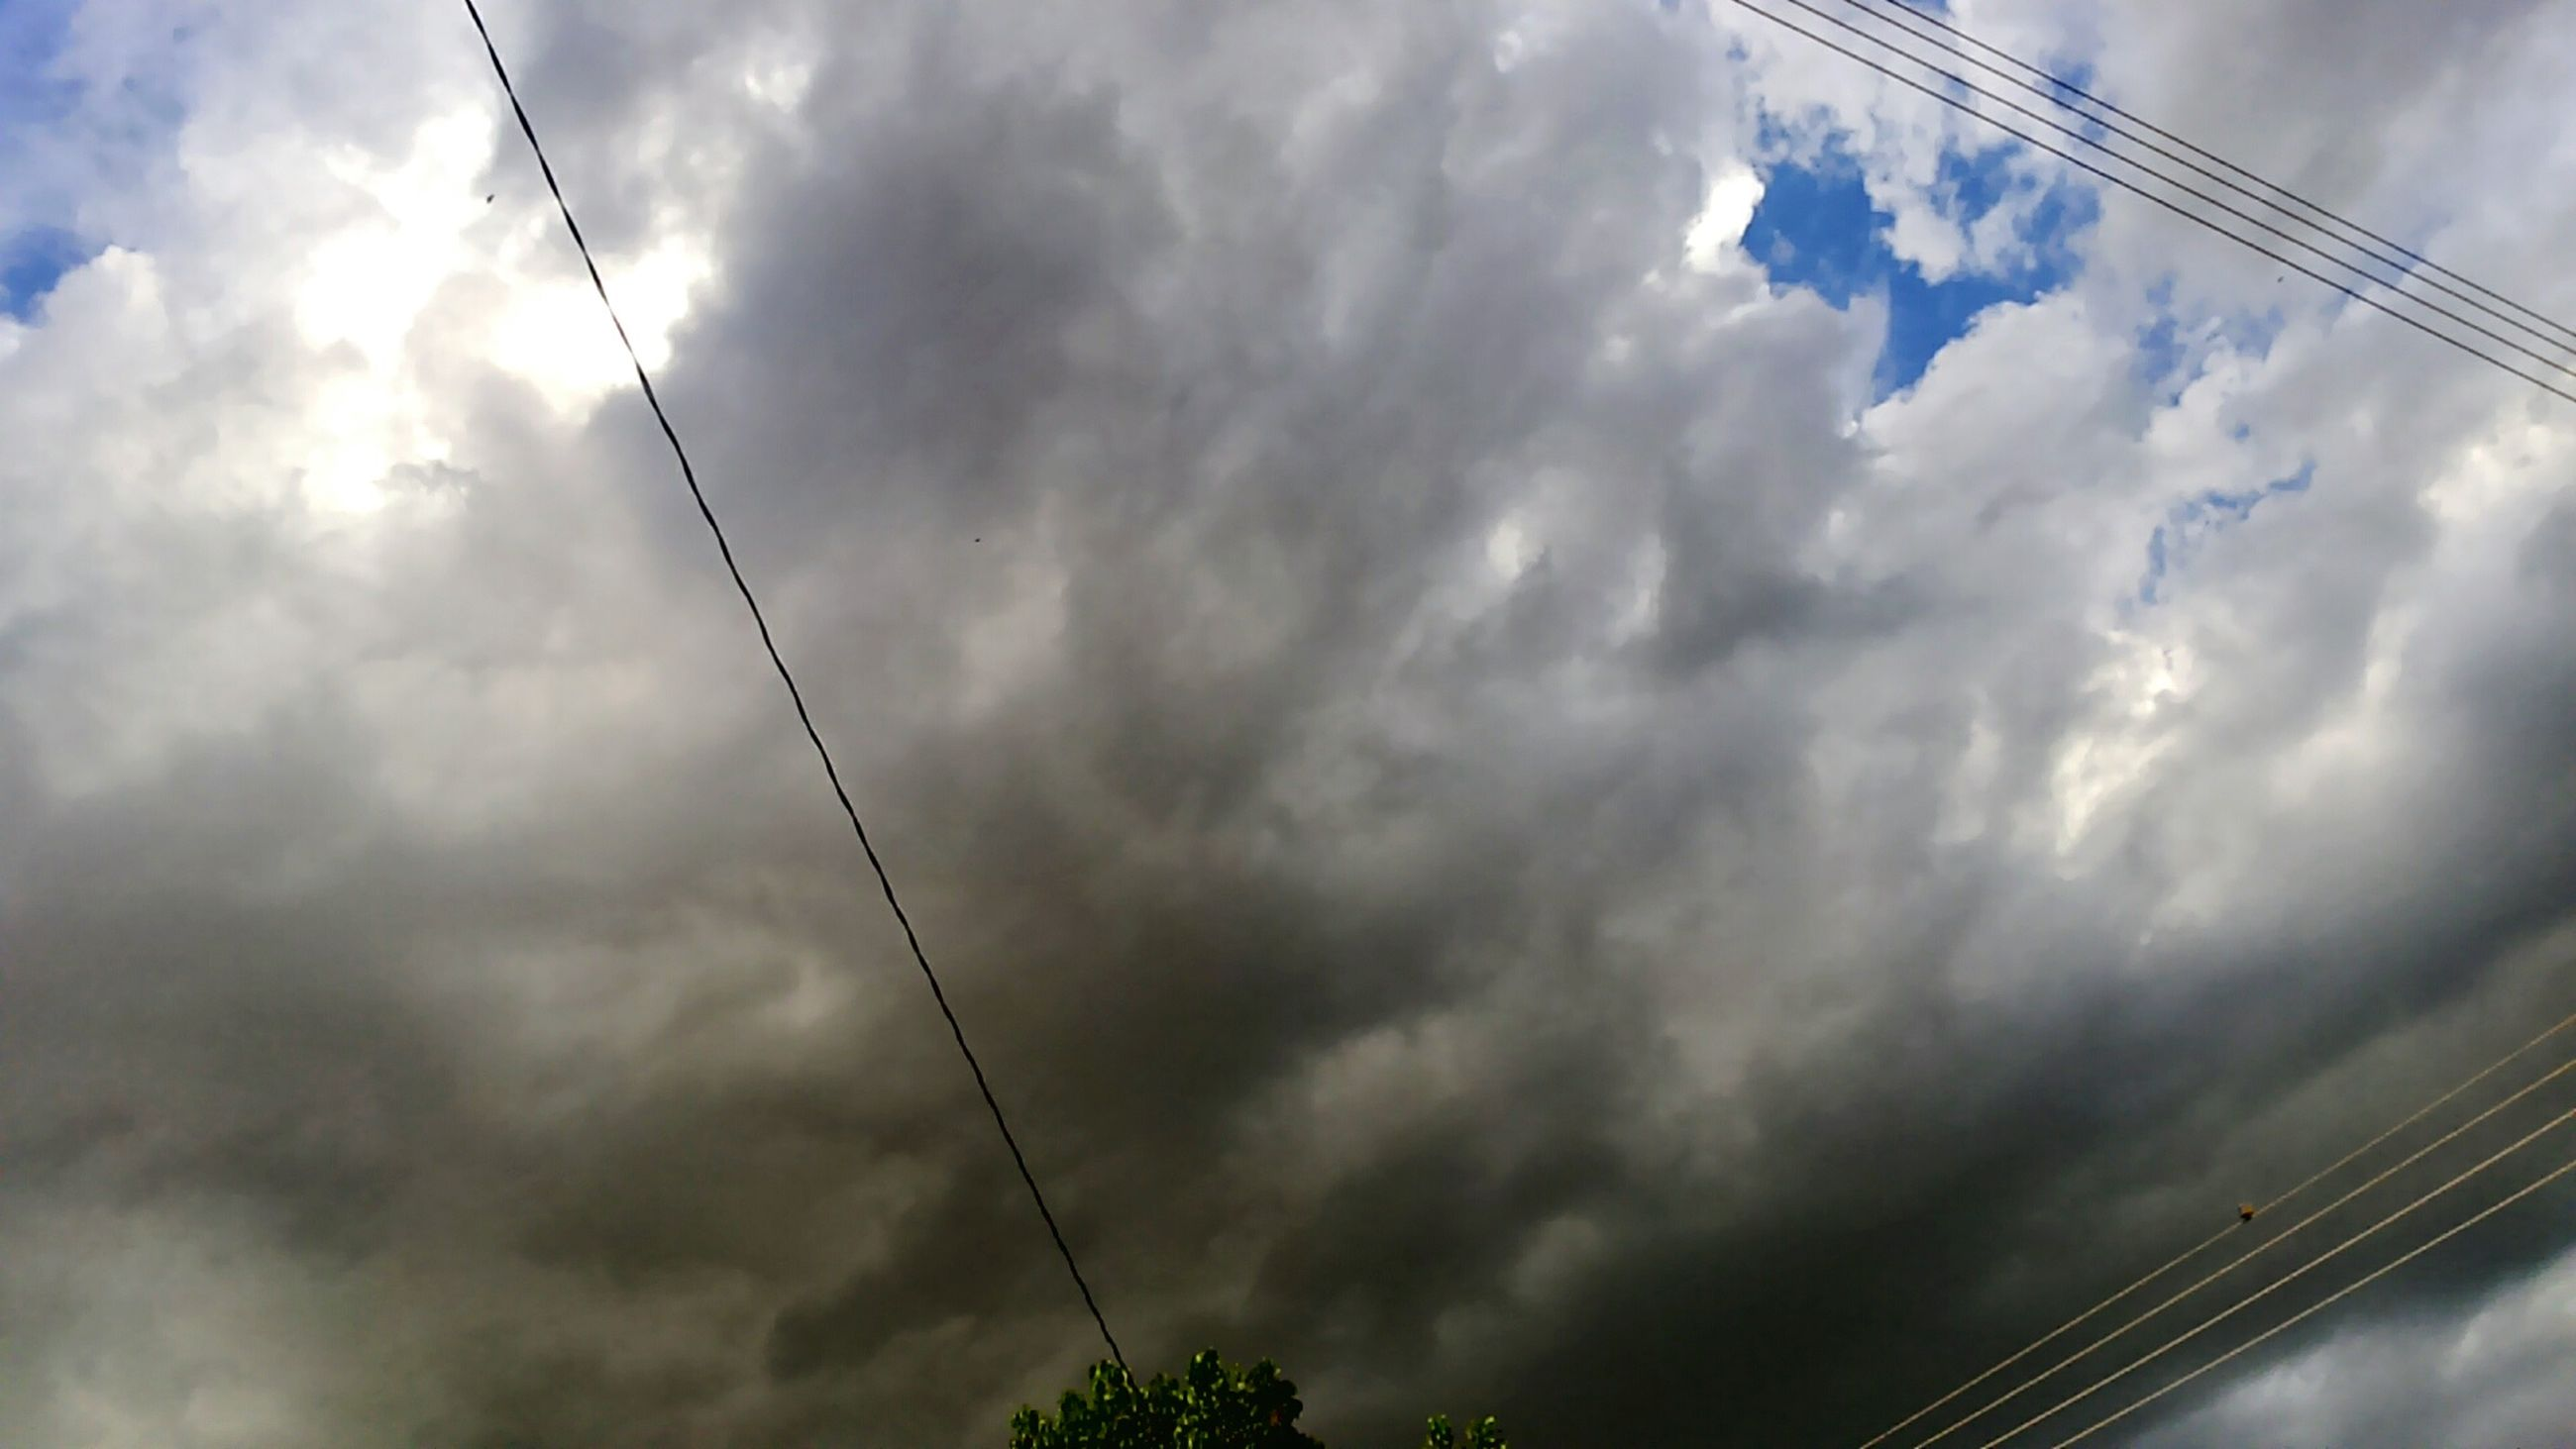 sky, power line, low angle view, cloud - sky, cloudy, cable, electricity, electricity pylon, power supply, connection, cloud, weather, overcast, technology, nature, power cable, beauty in nature, fuel and power generation, silhouette, cloudscape